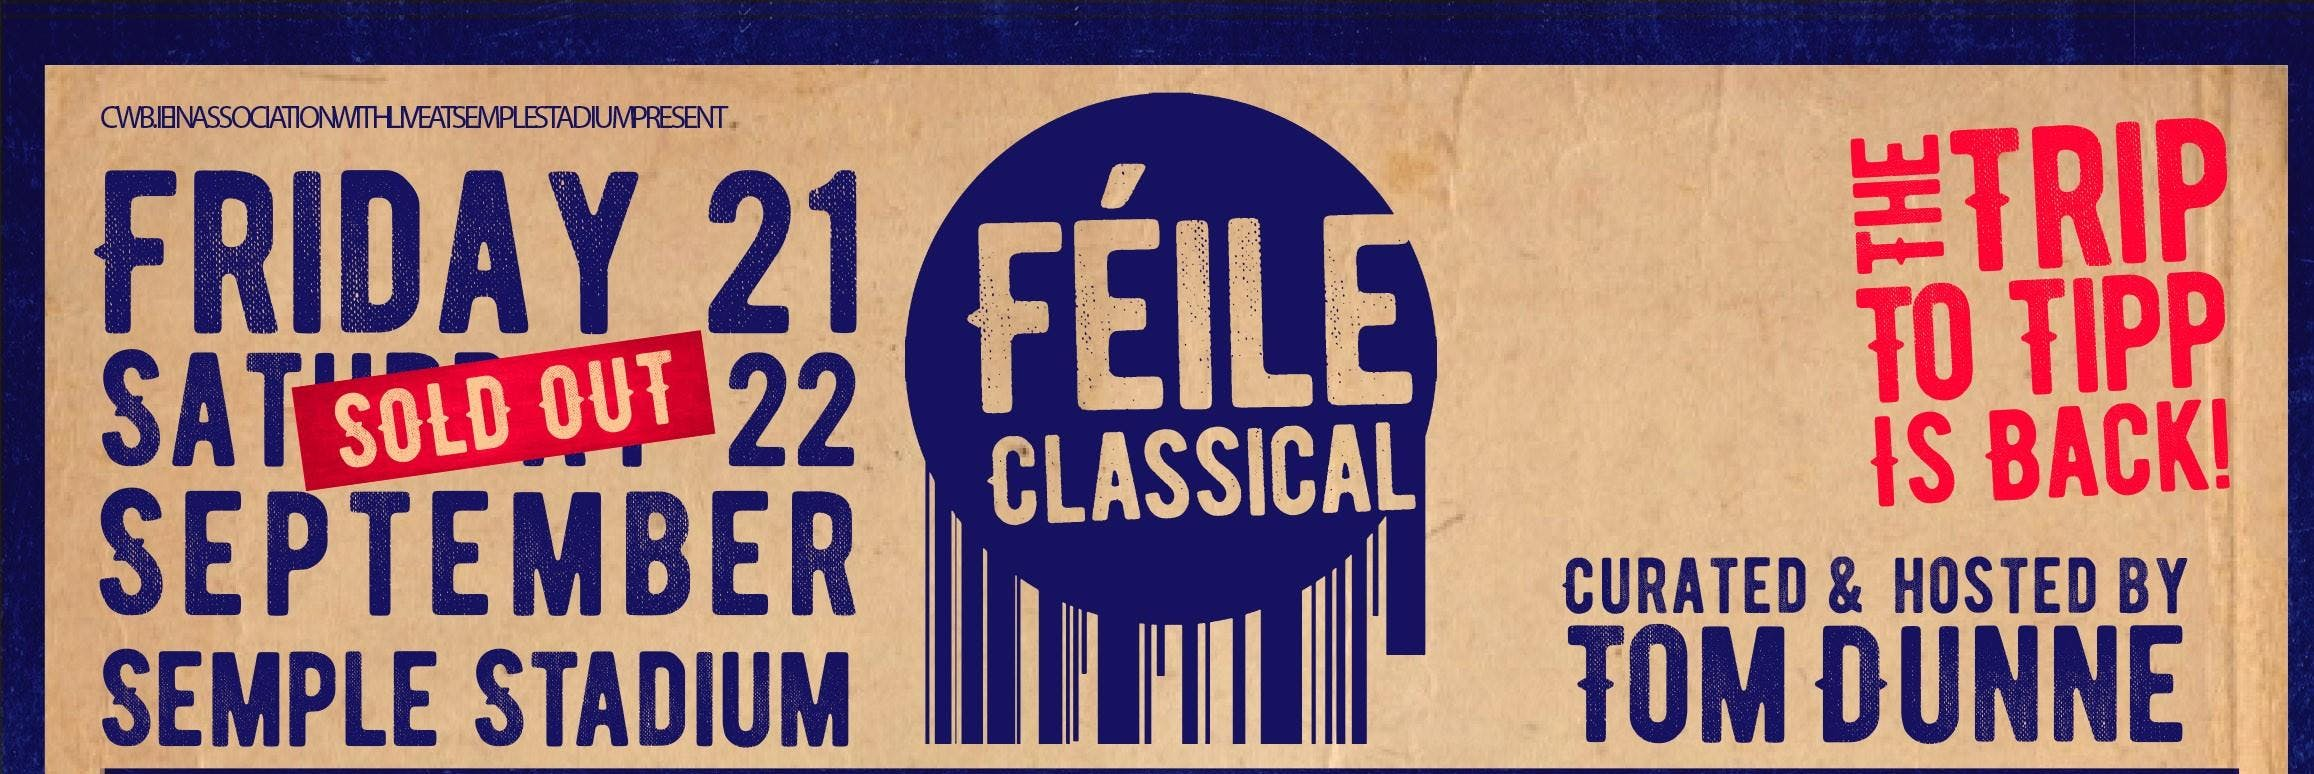 Féile Classical Return Bus Service - Saturday 22nd September